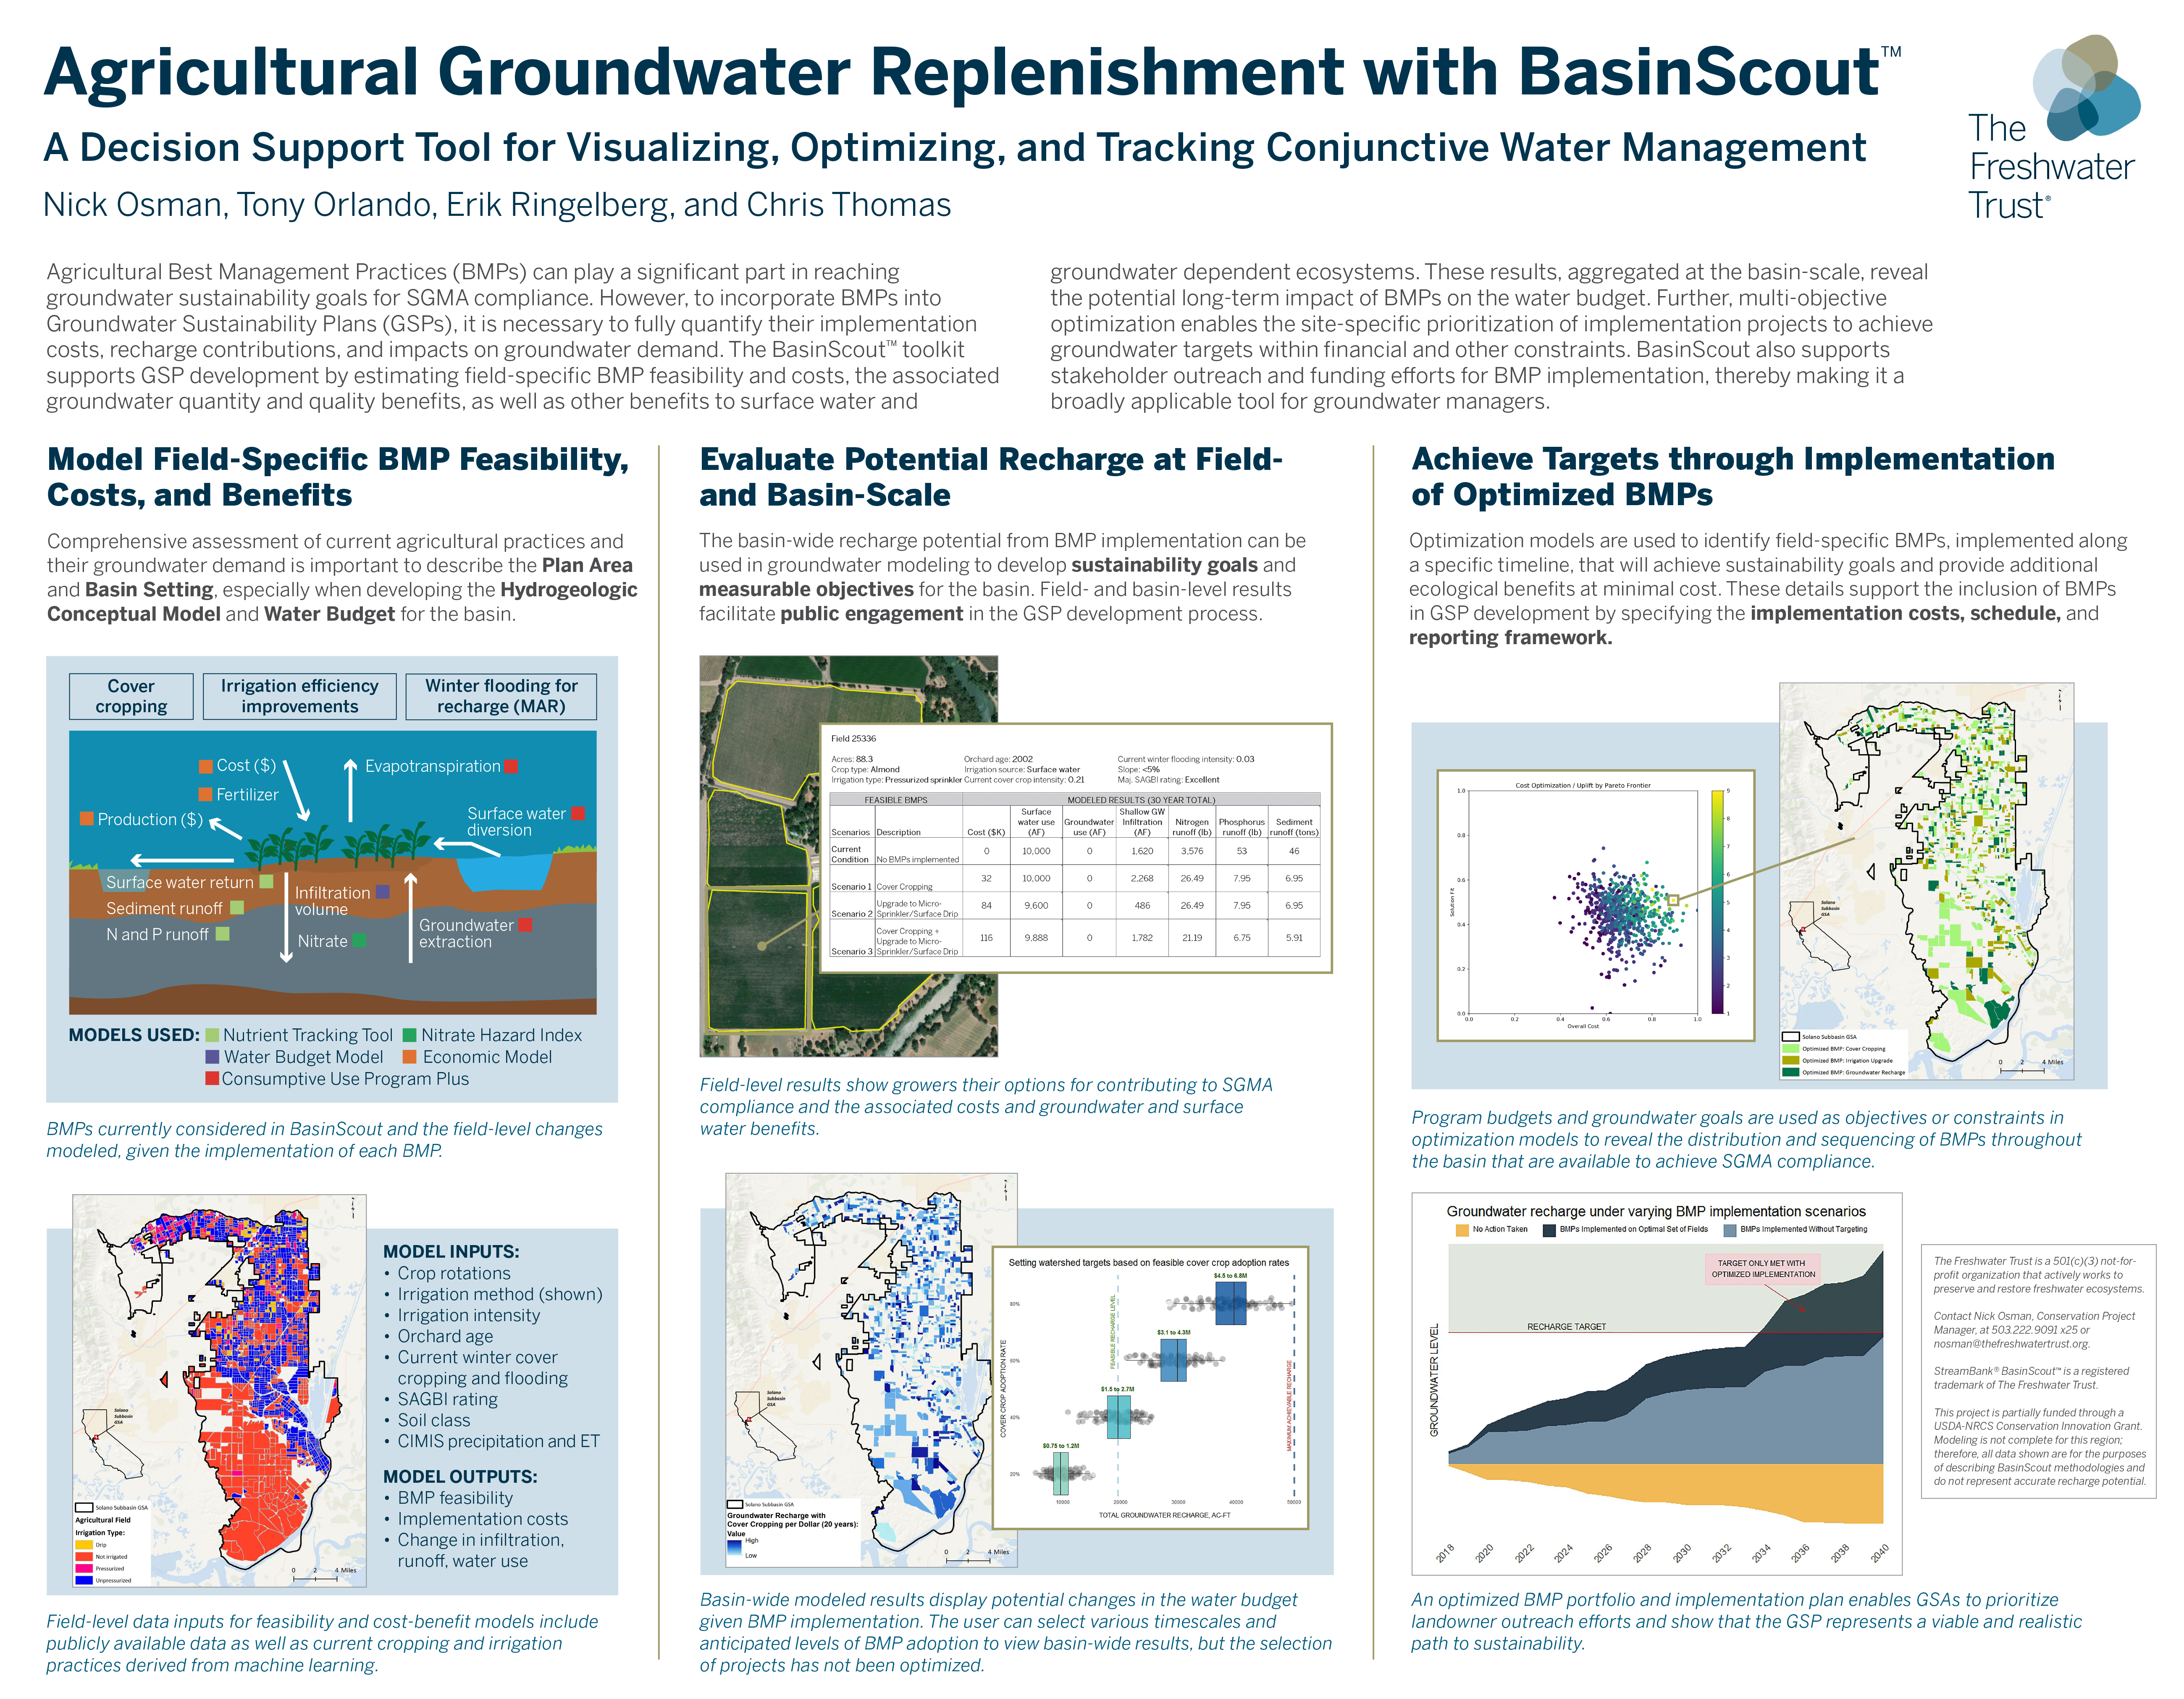 Agricultural Groundwater Replenishment with BasinScout